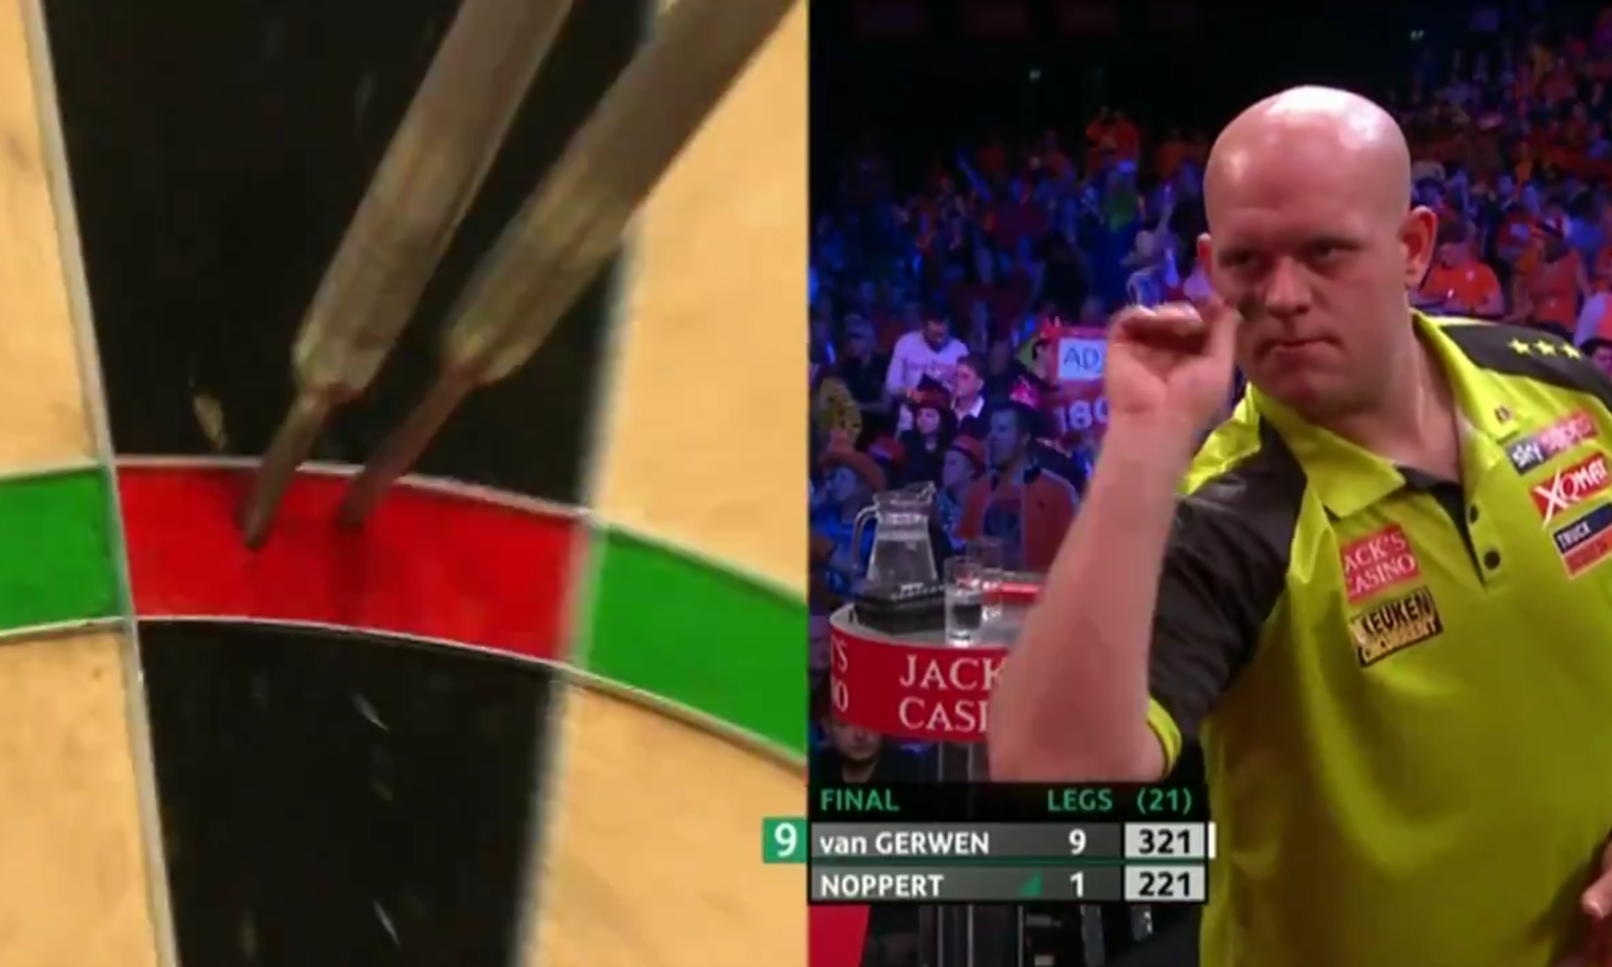 This Happened To Van Gerwen After Scoring 499 Points With Only 9 Darts